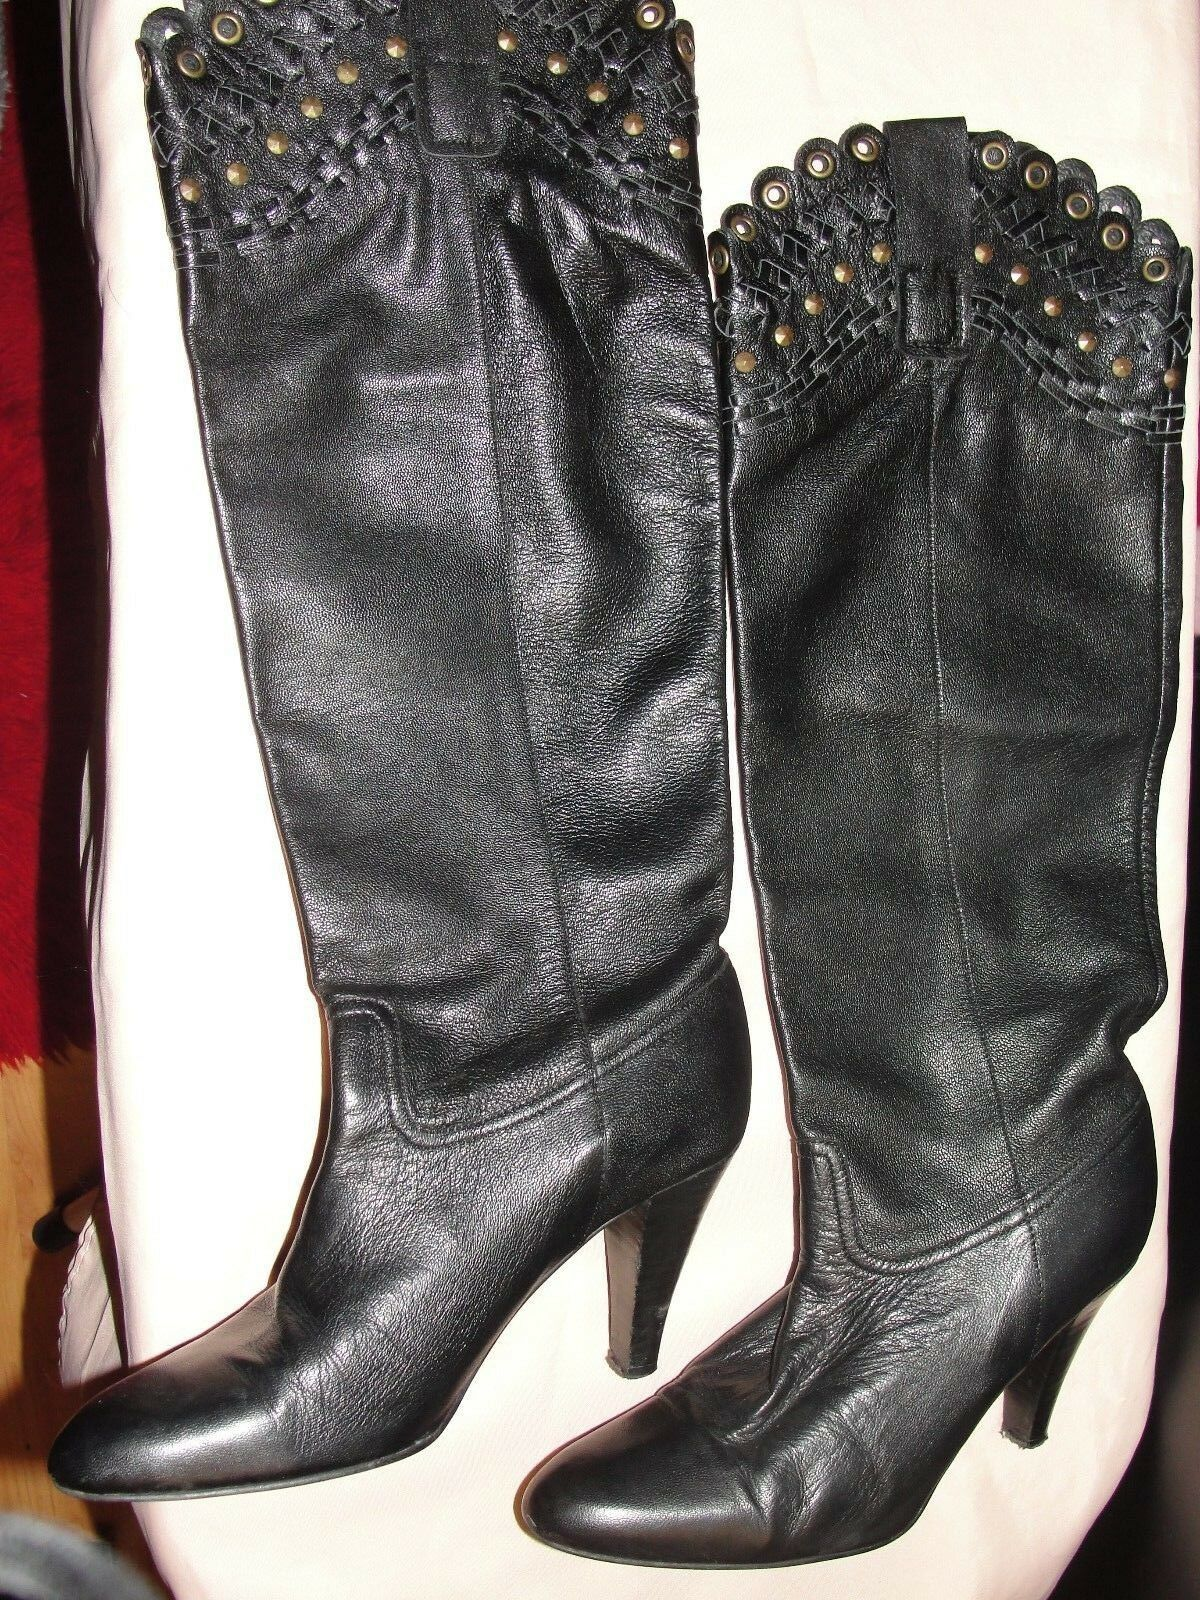 KG REAL LEATHER BOOTS -  SIZE 37, UK 4